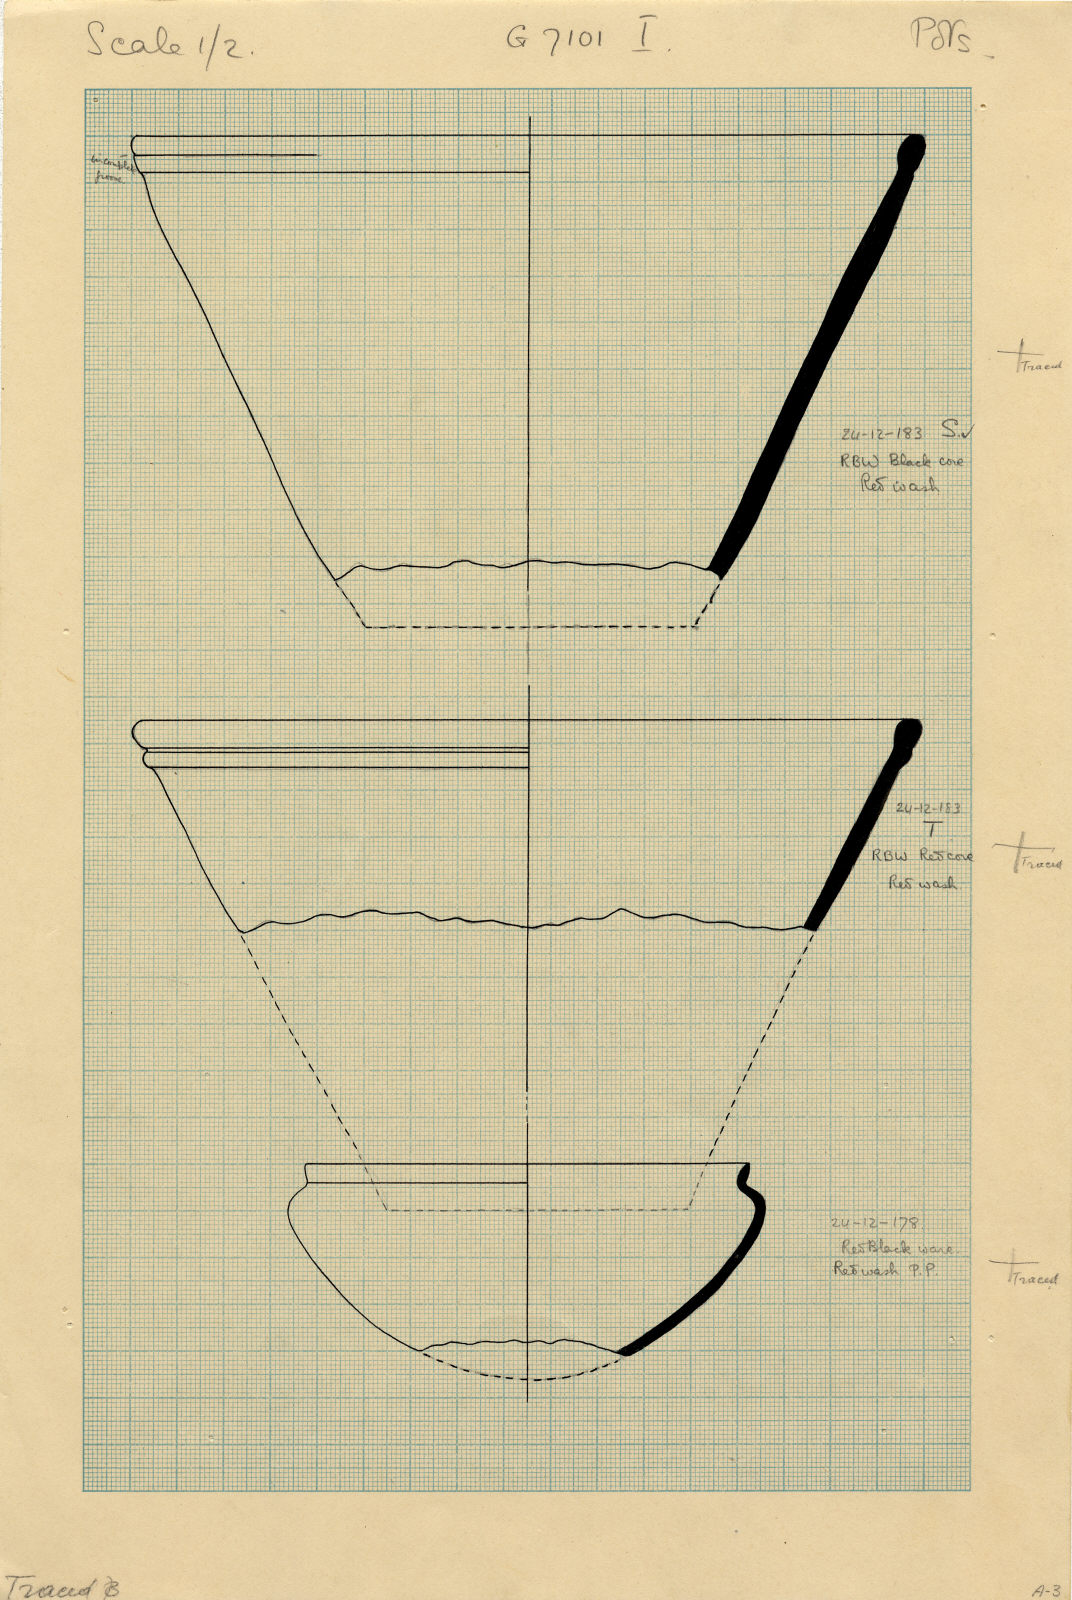 Drawings: G 7101, Shaft I, S, T: pottery, bowls